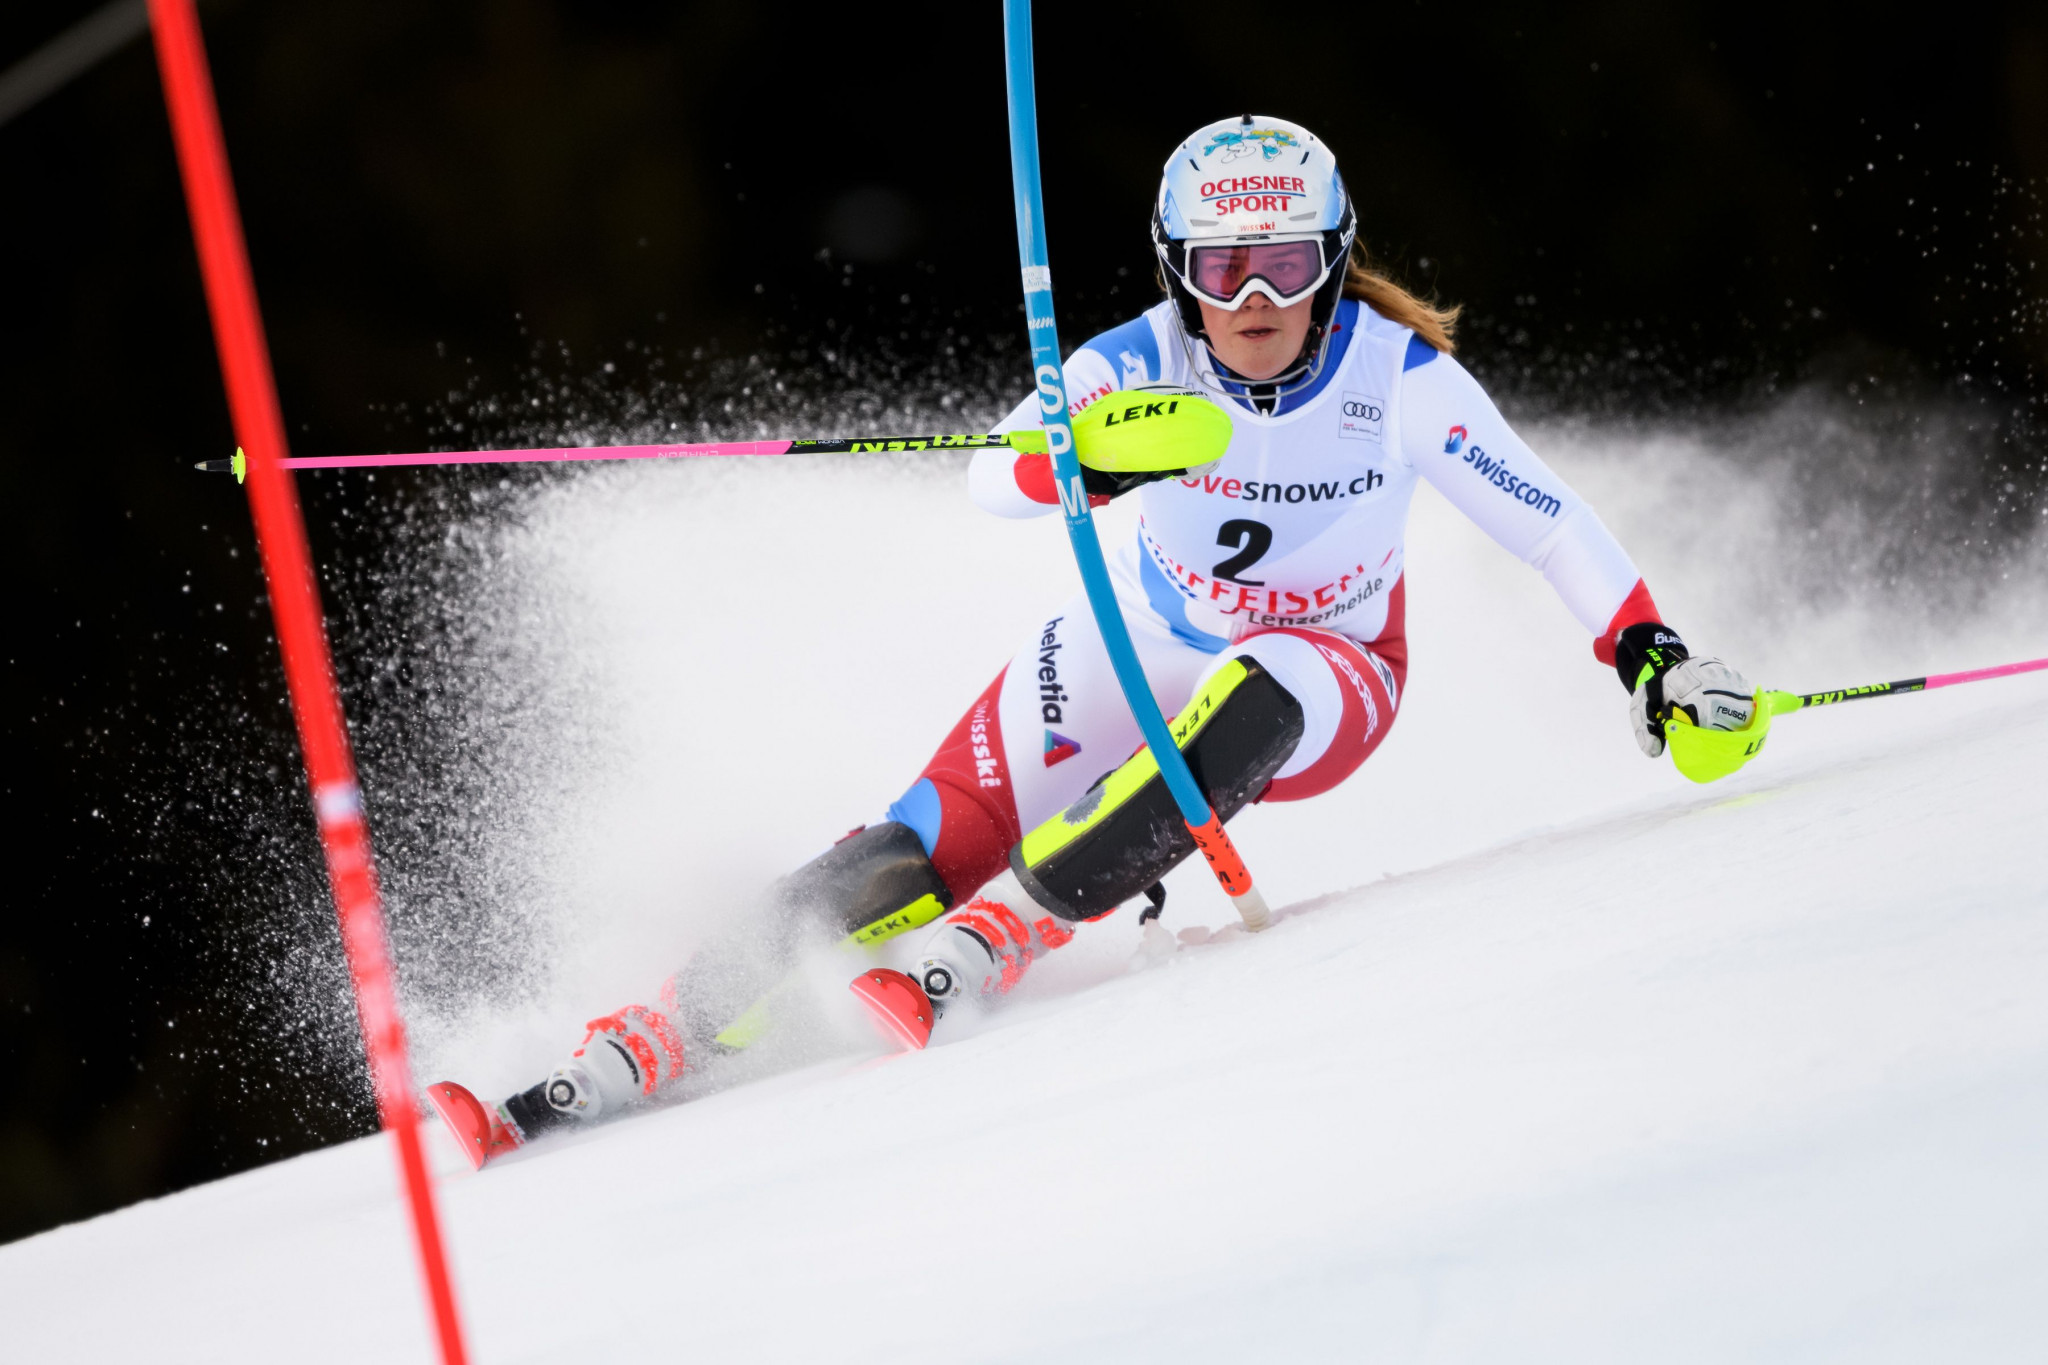 Melanie Meillard gained her first World Cup podium finish in January ©Getty Images